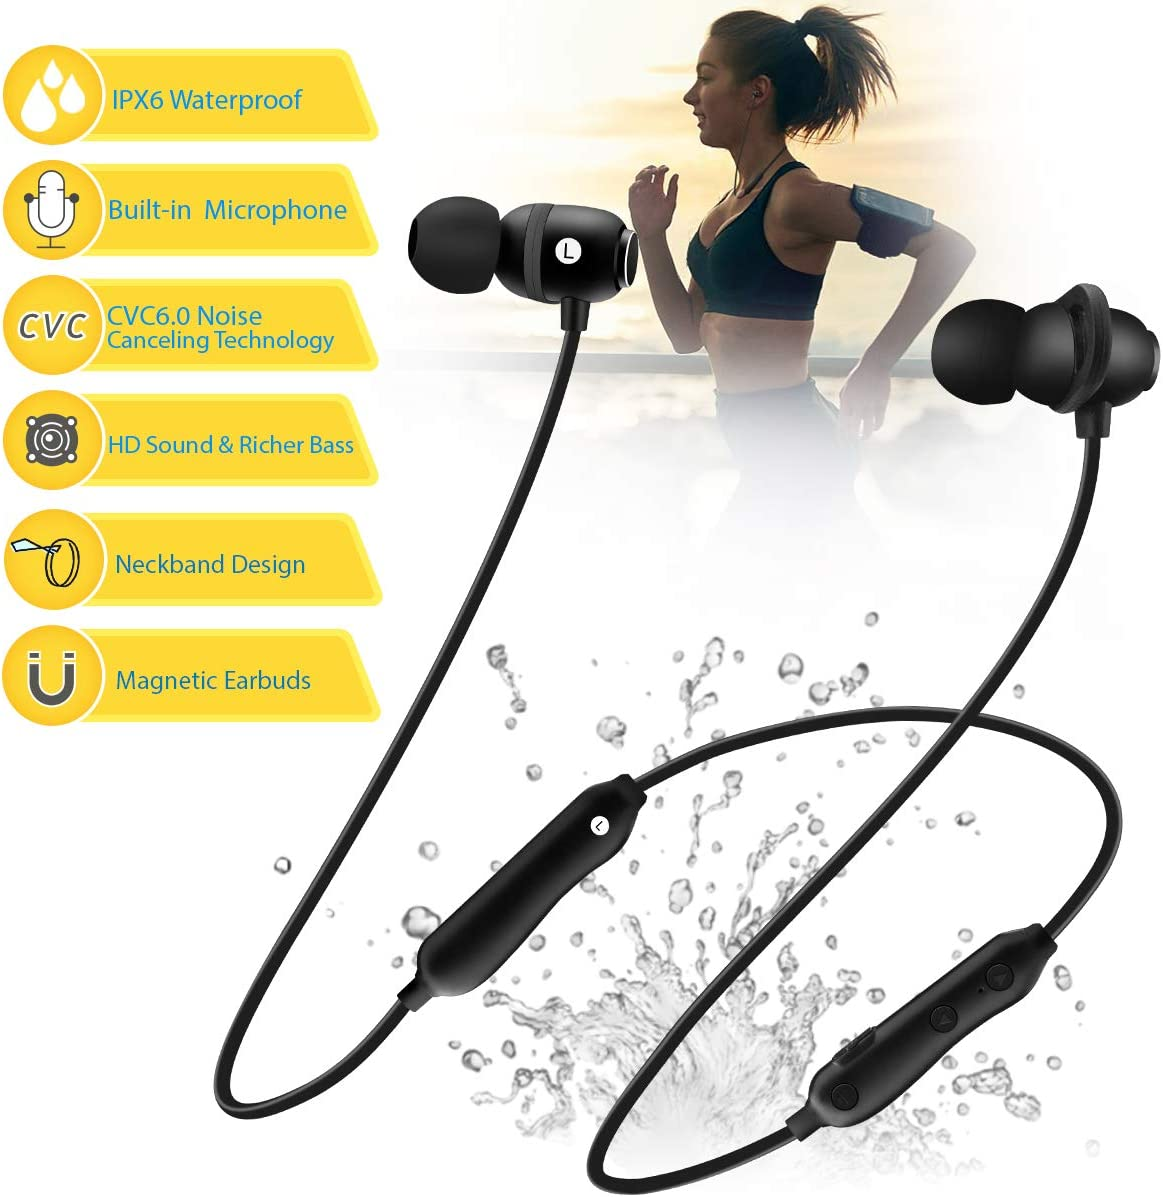 Bluetooth Headphones 5.0 Wireless Earbuds IPX6 Waterproof Magnetic with Stereo Bass, 8 Hours Play Time,Noise Cancelling Sweatproof Sport in-Ear Earphones for Running Workout Gym